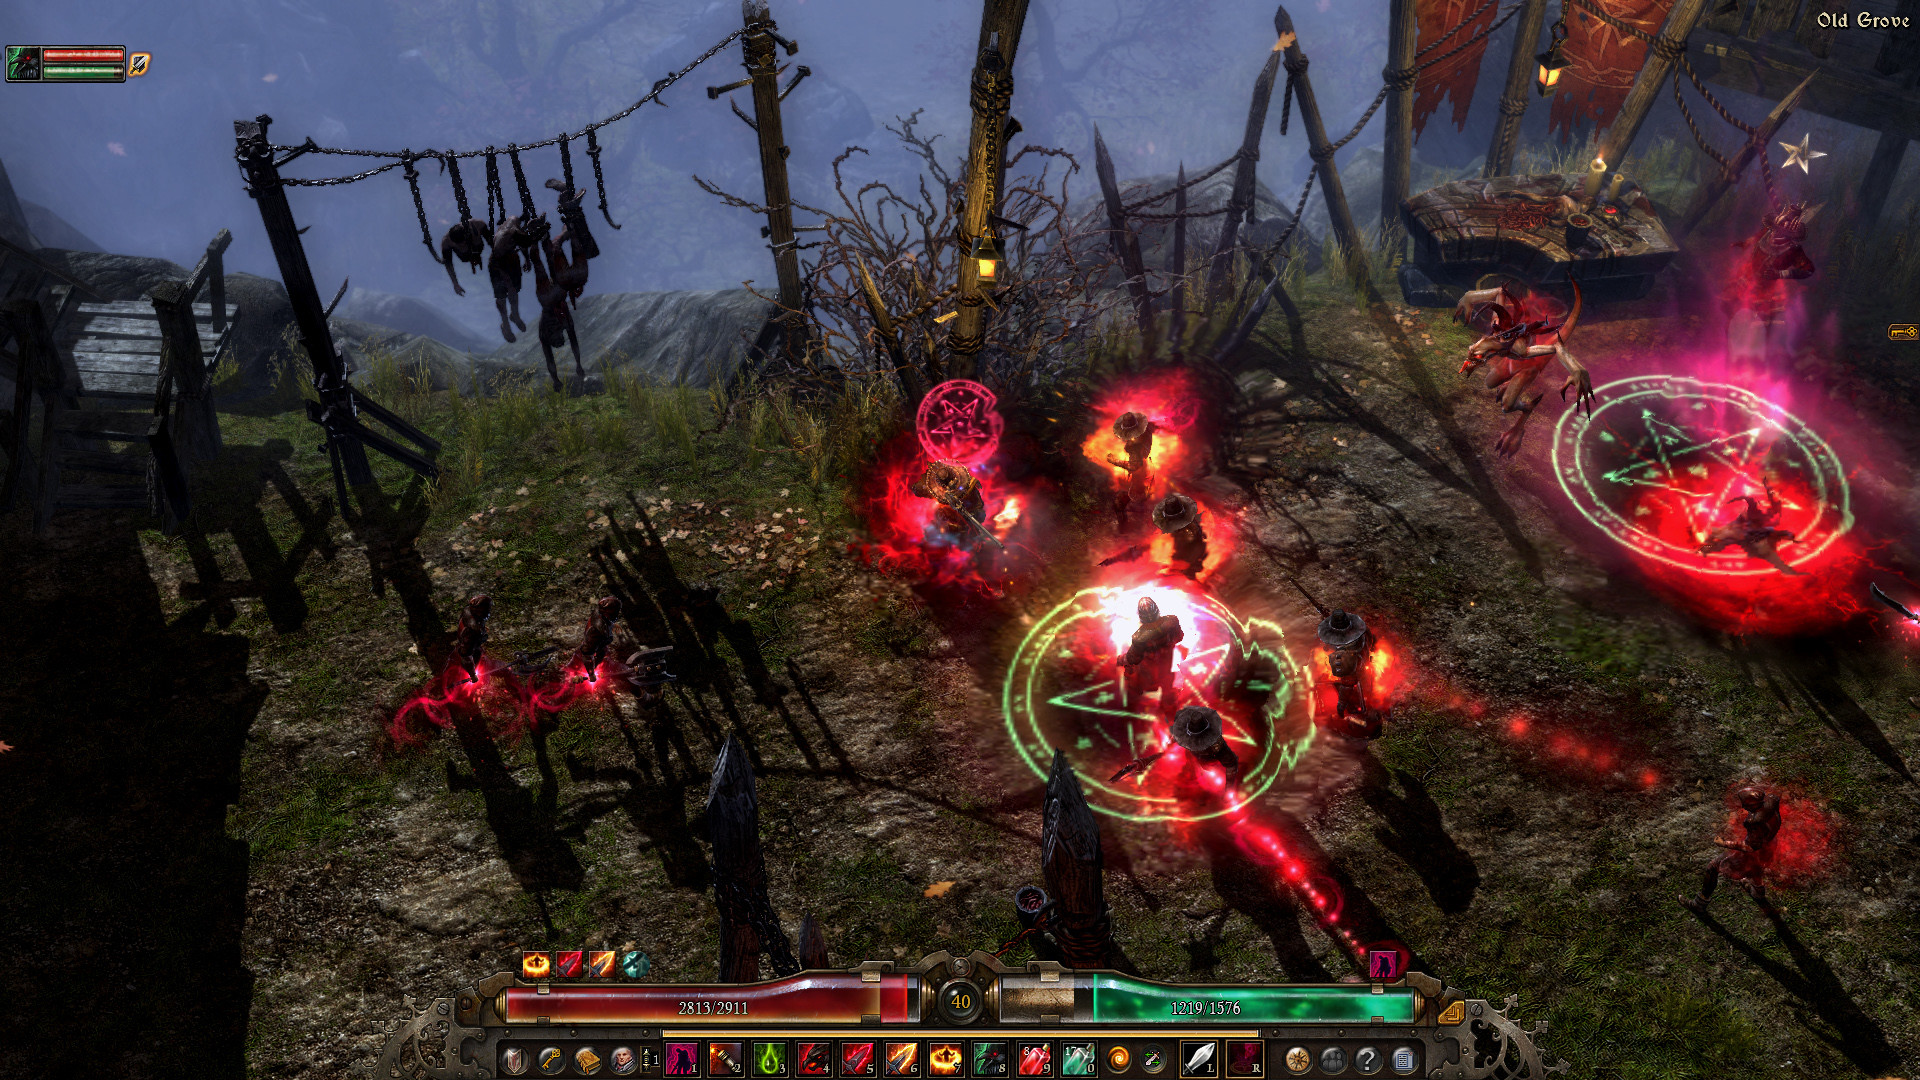 … to old grove with B25 grim dawn,but someone manage to.Is it developers  show us old grove or someone using bugs to access to old grove.